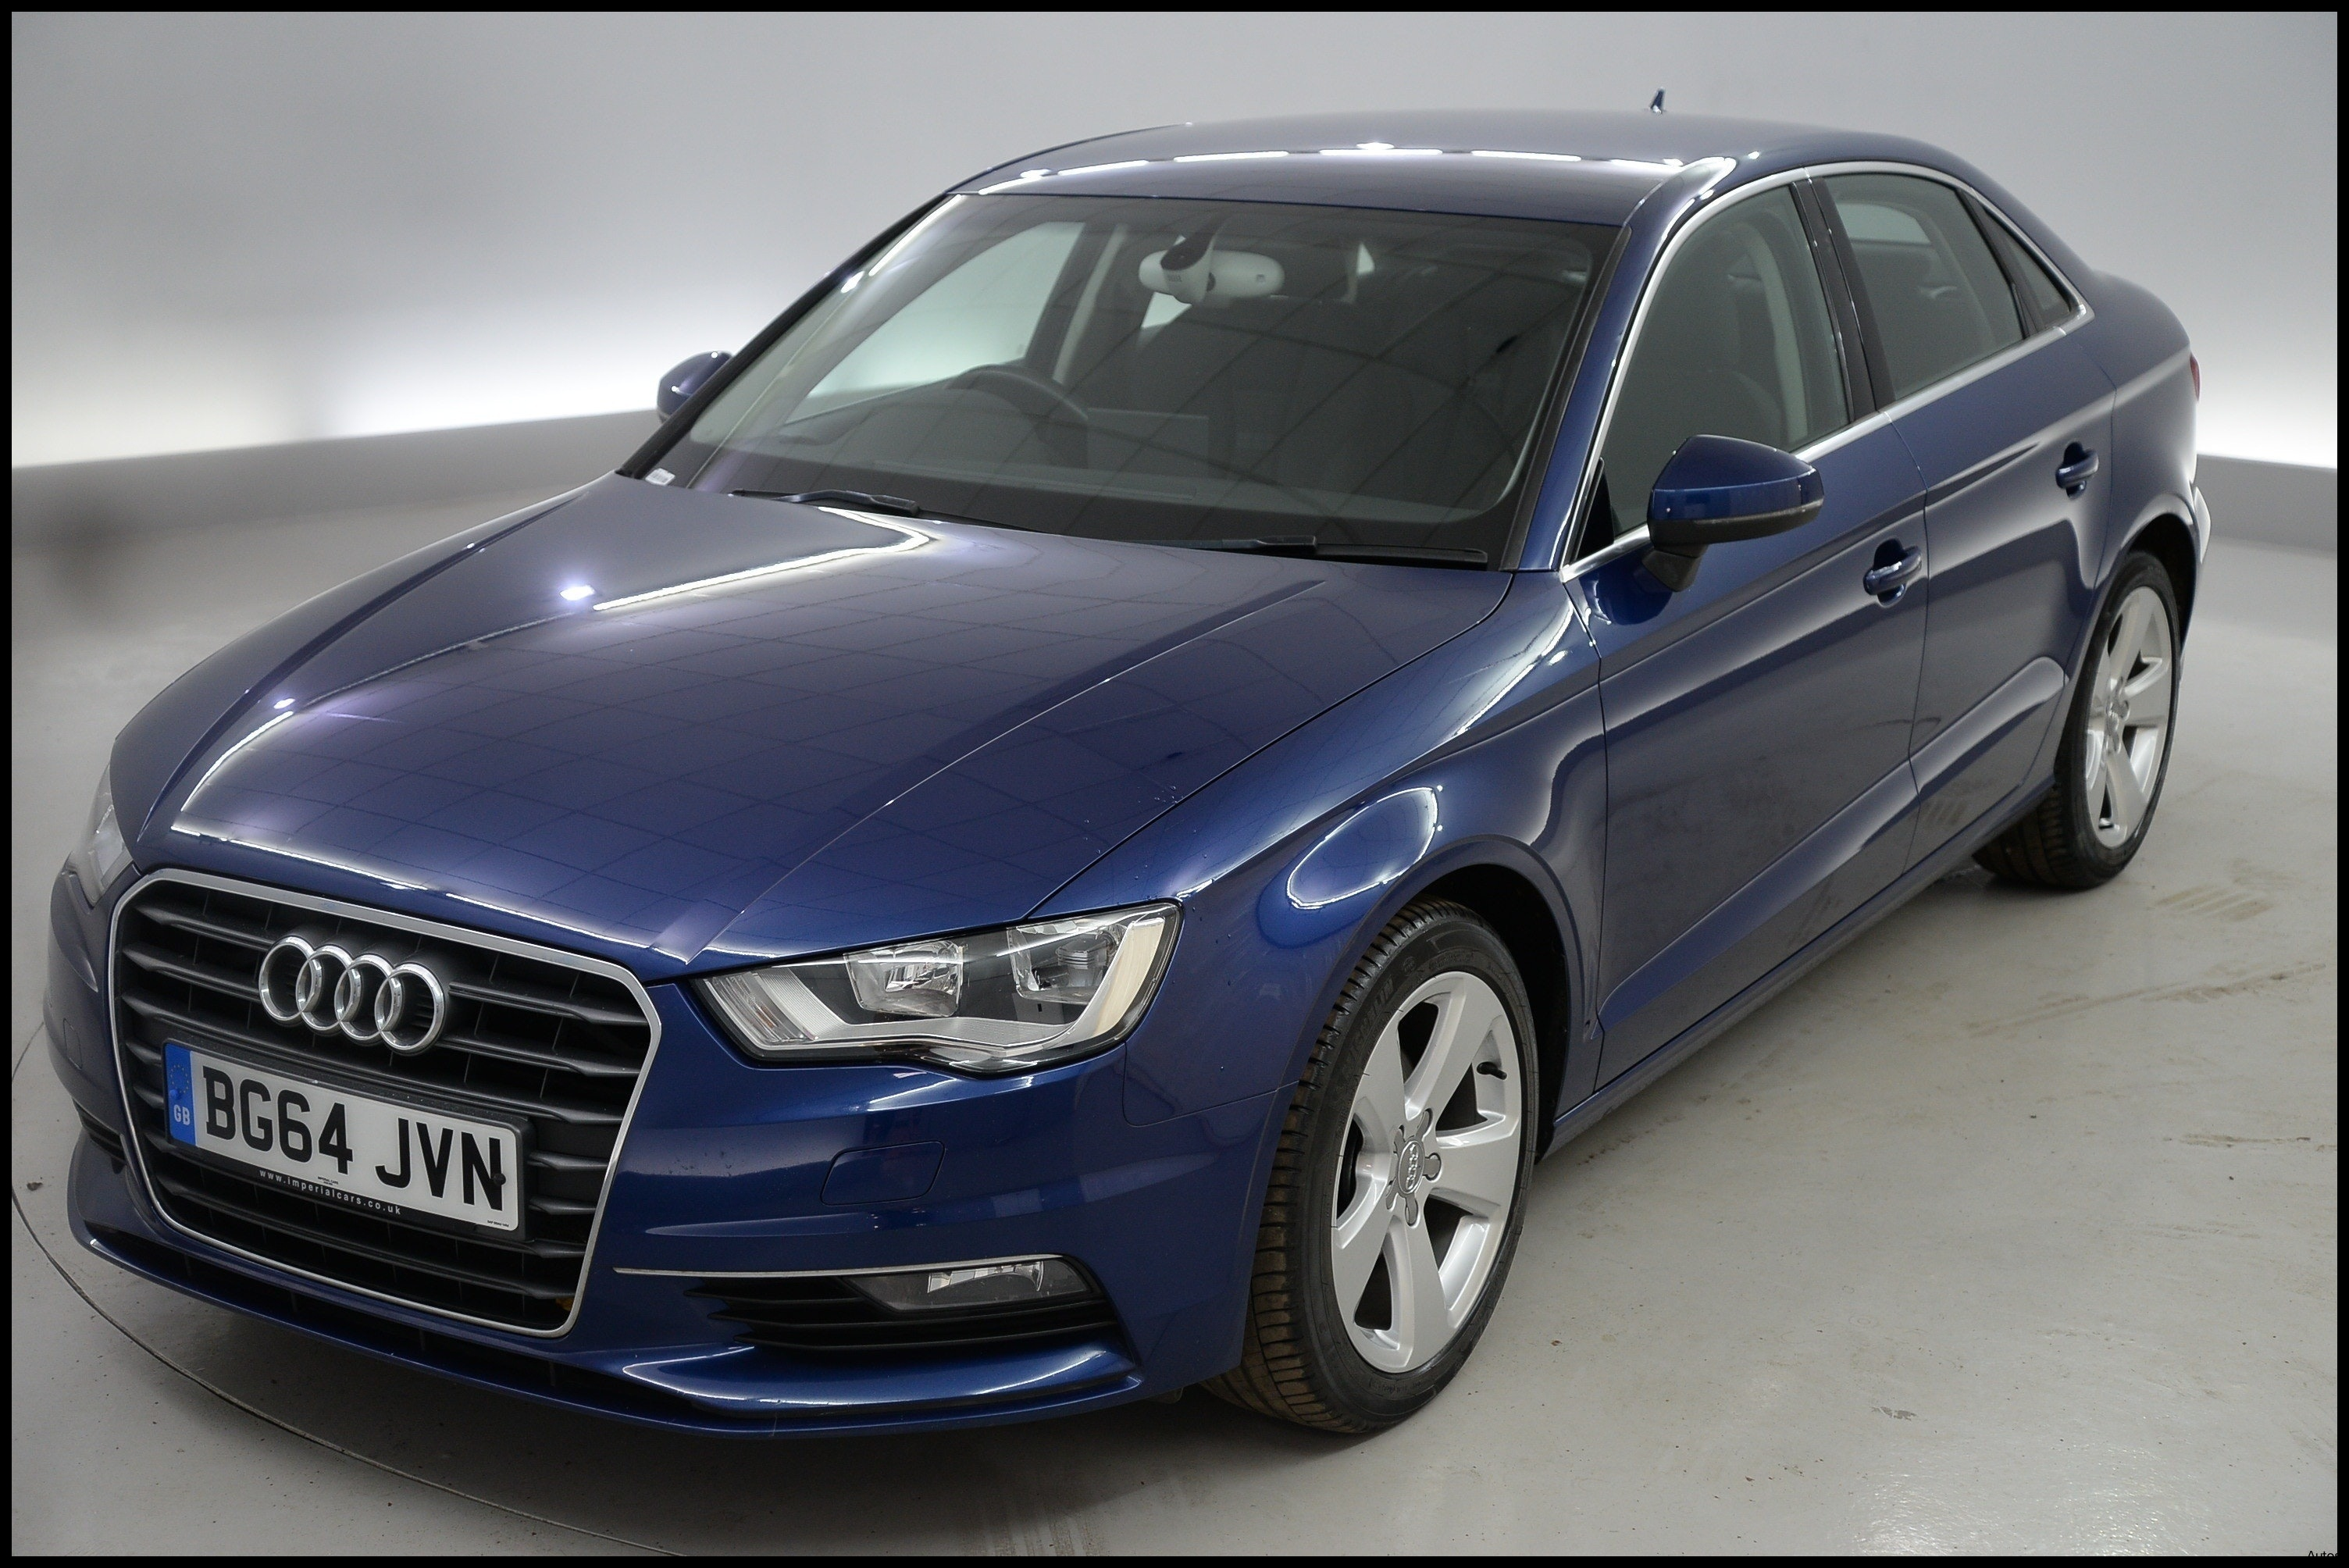 Audi Price Match Source · Awesome Audi Maintenance Cost Latest Dream Cars